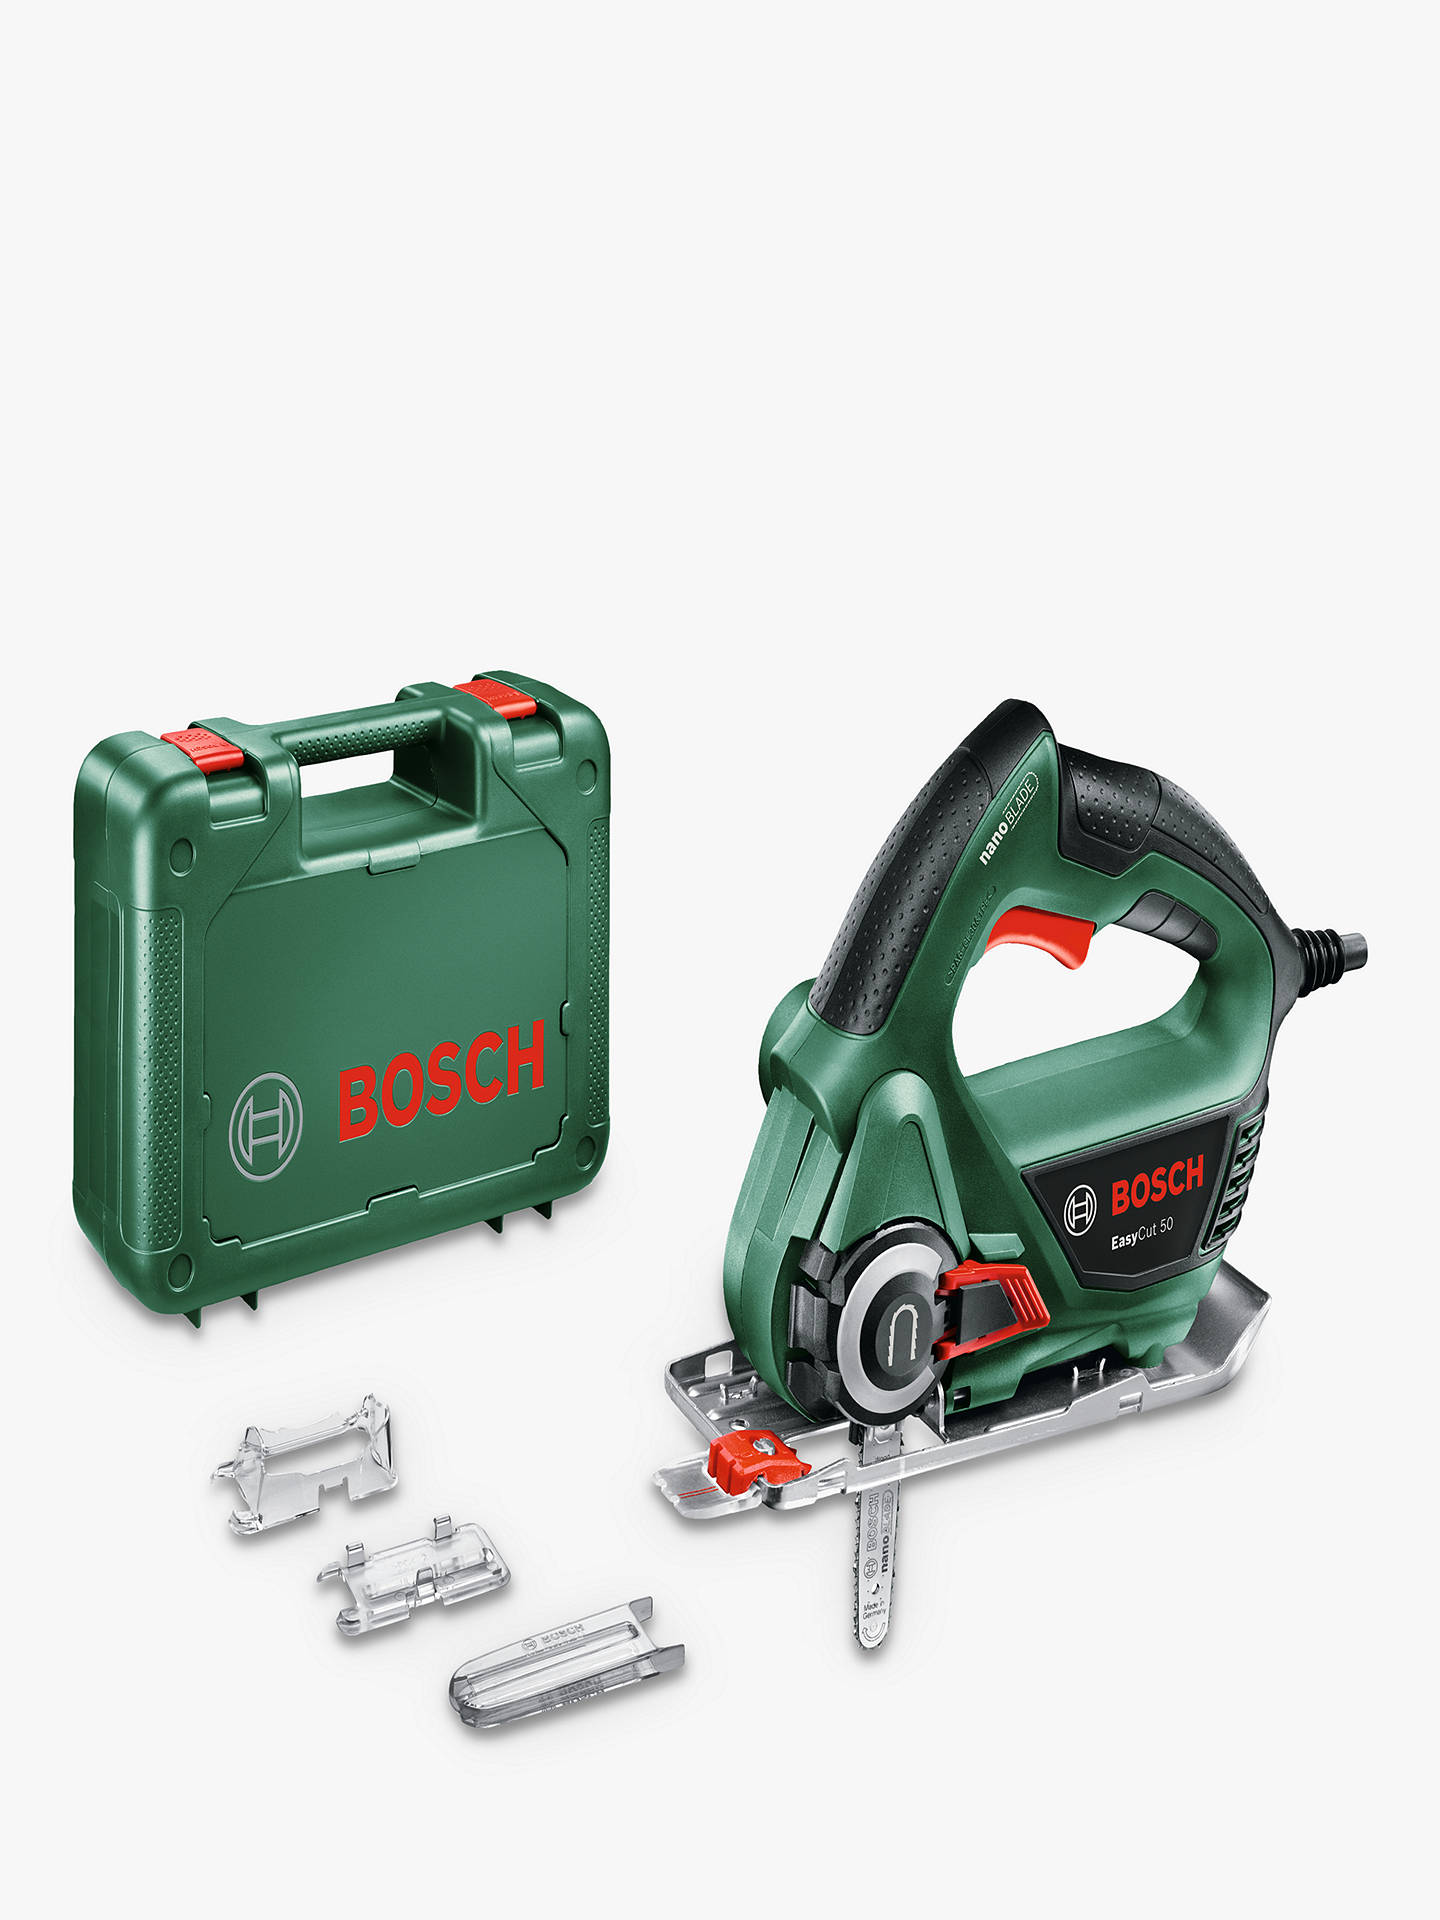 bosch easy cut 50 multi saw at john lewis & partners